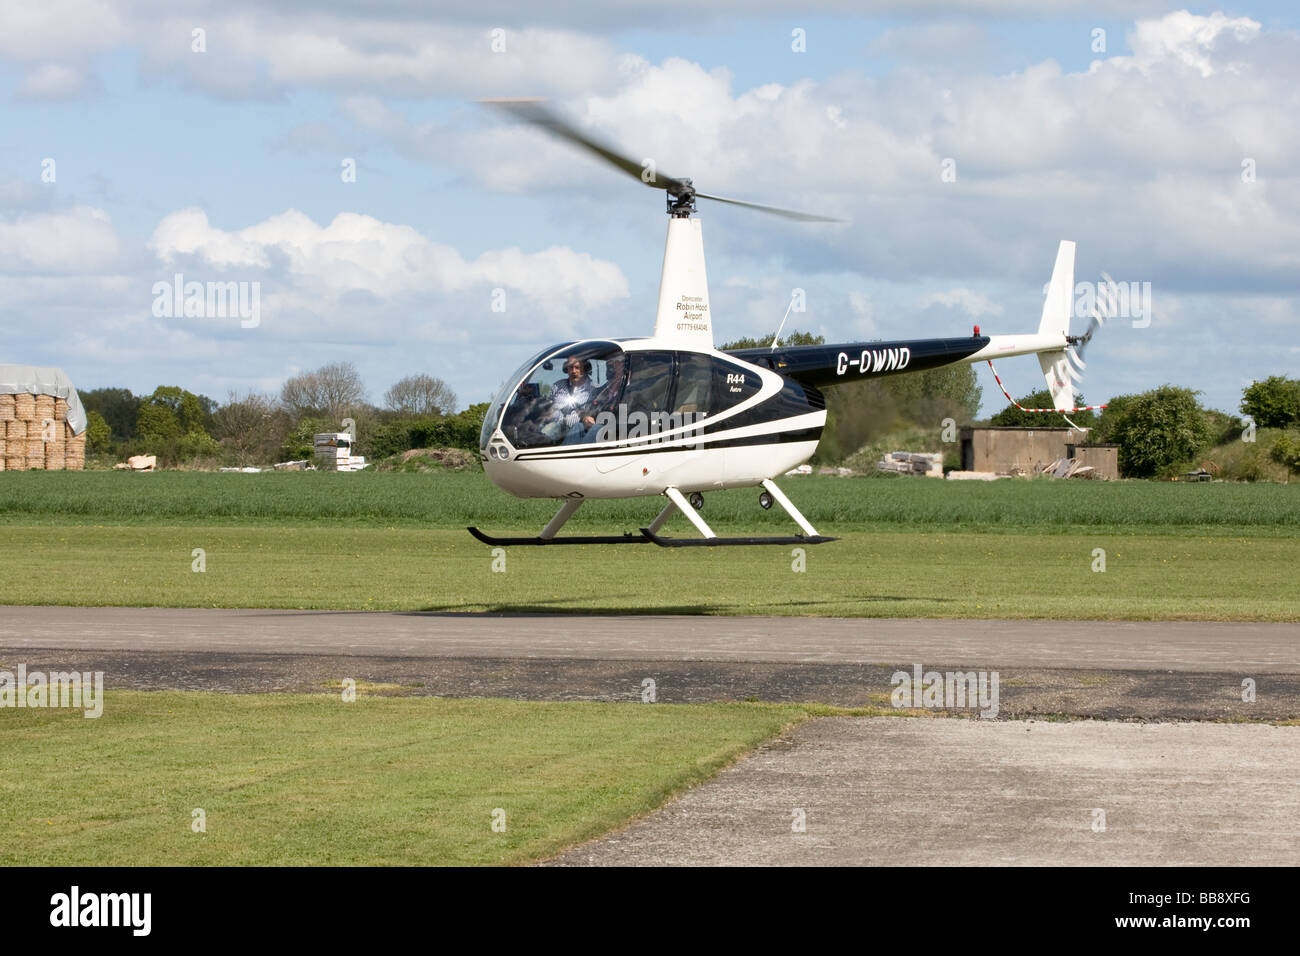 Robinson R44 Astro G-OWND hovering ready to depart at Breighton Airfield - Stock Image